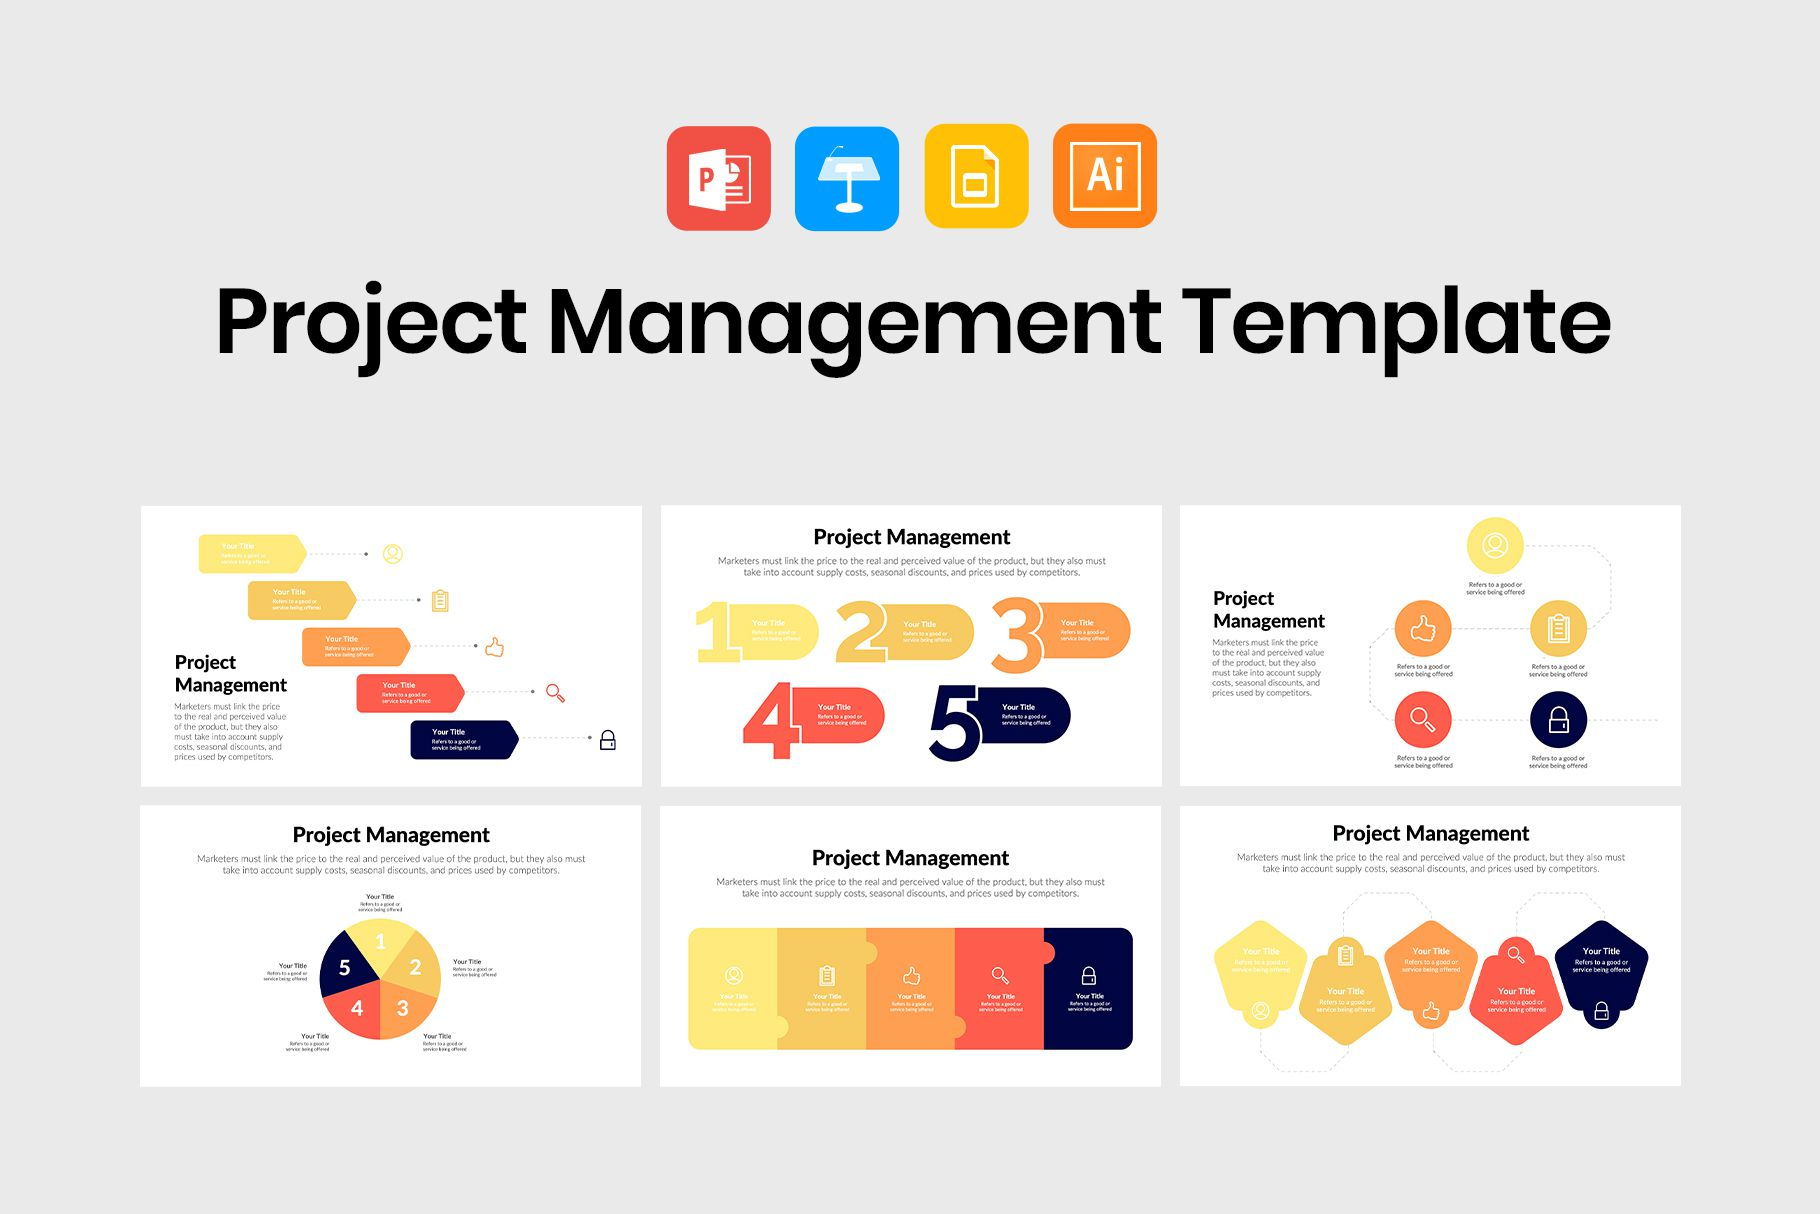 005 Amazing Project Management Powerpoint Template Free Download Image  Sqert DashboardFull